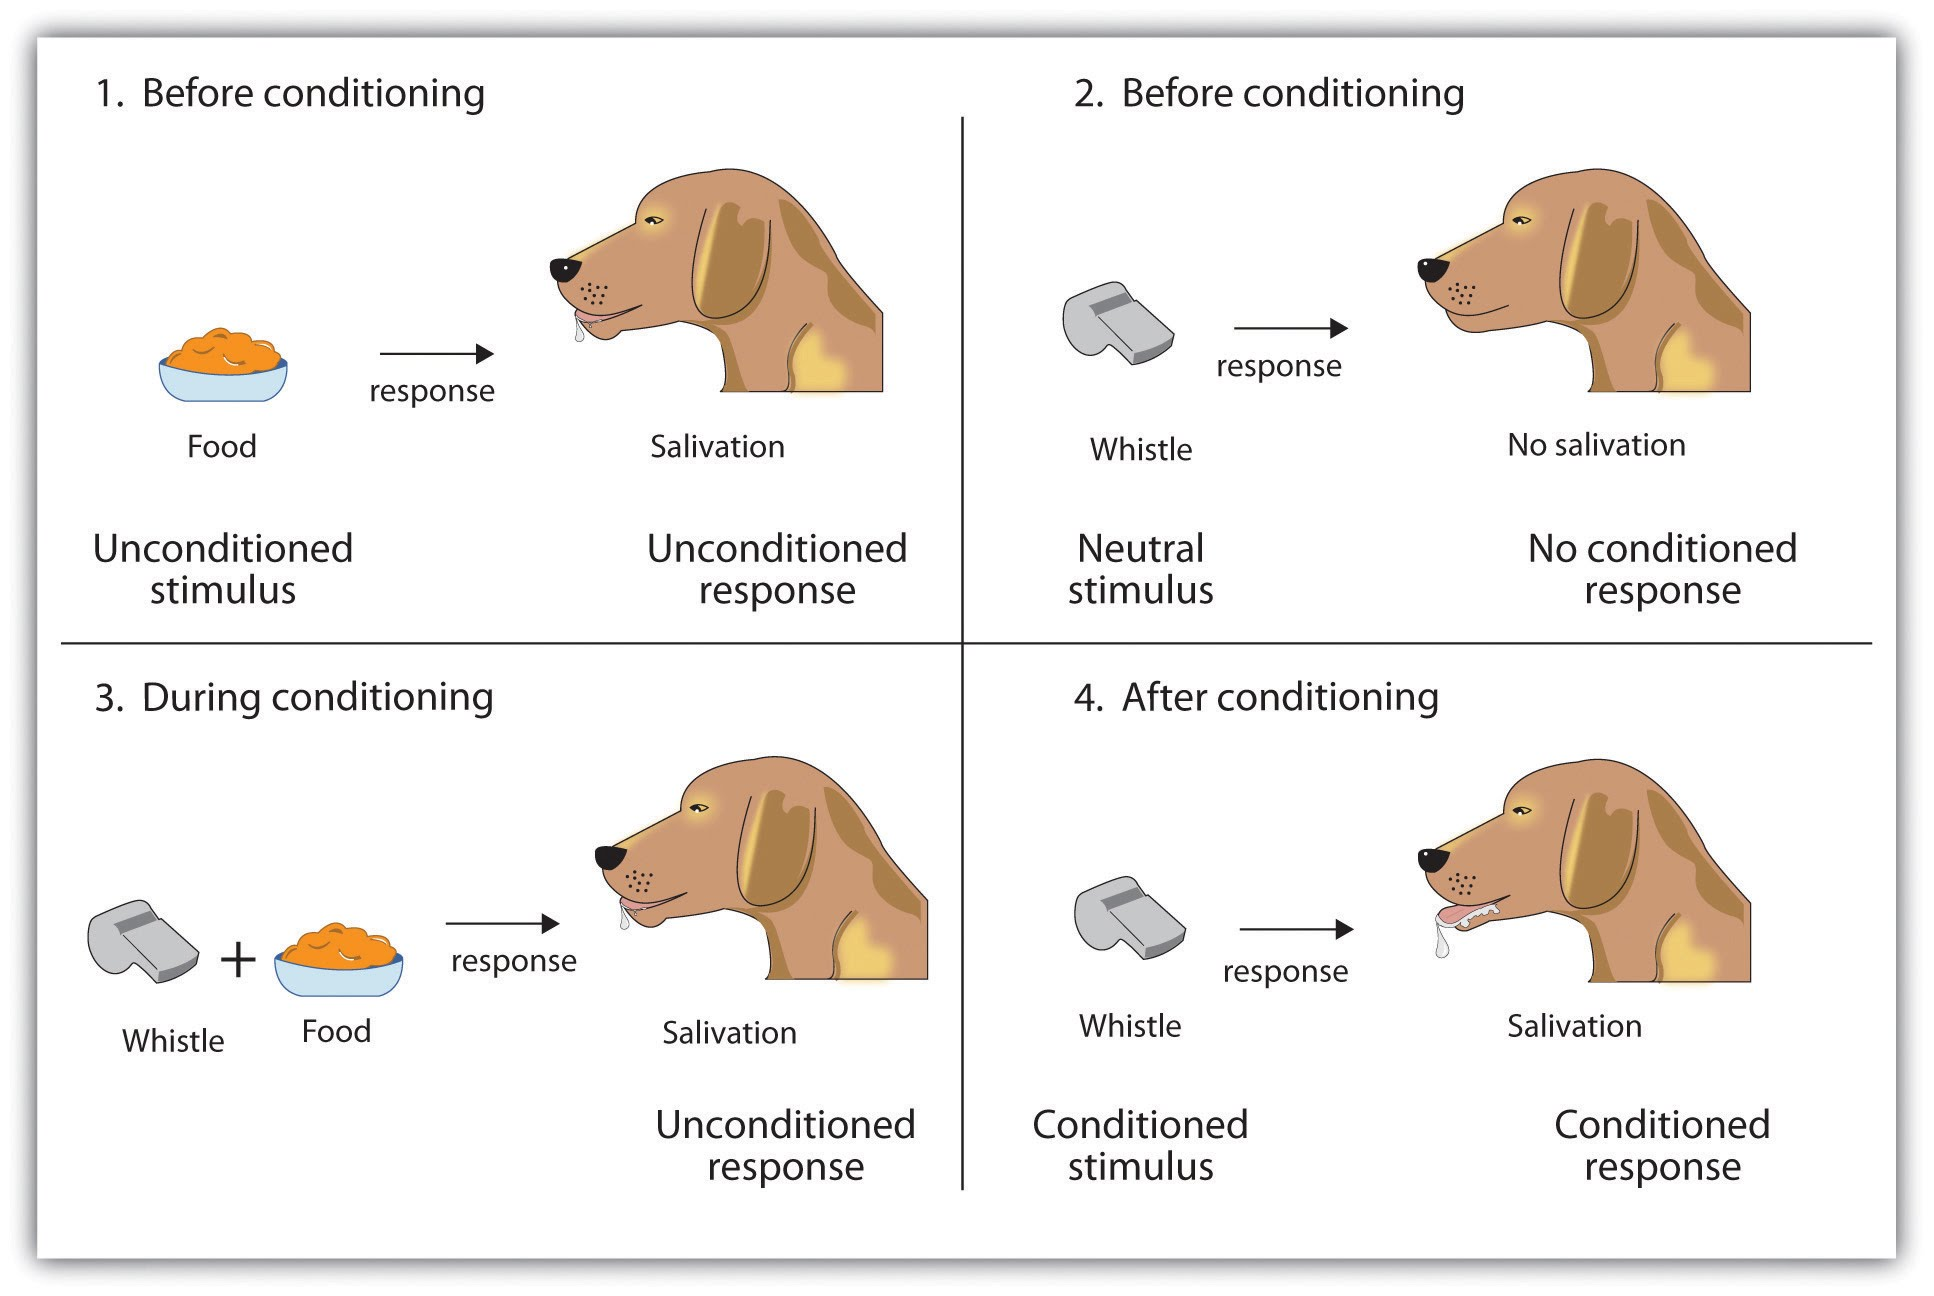 learning classical conditioning Ivan pavlov's research on the digestive system of dogs unexpectedly led to his discovery of the learning process now known as classical conditioning.